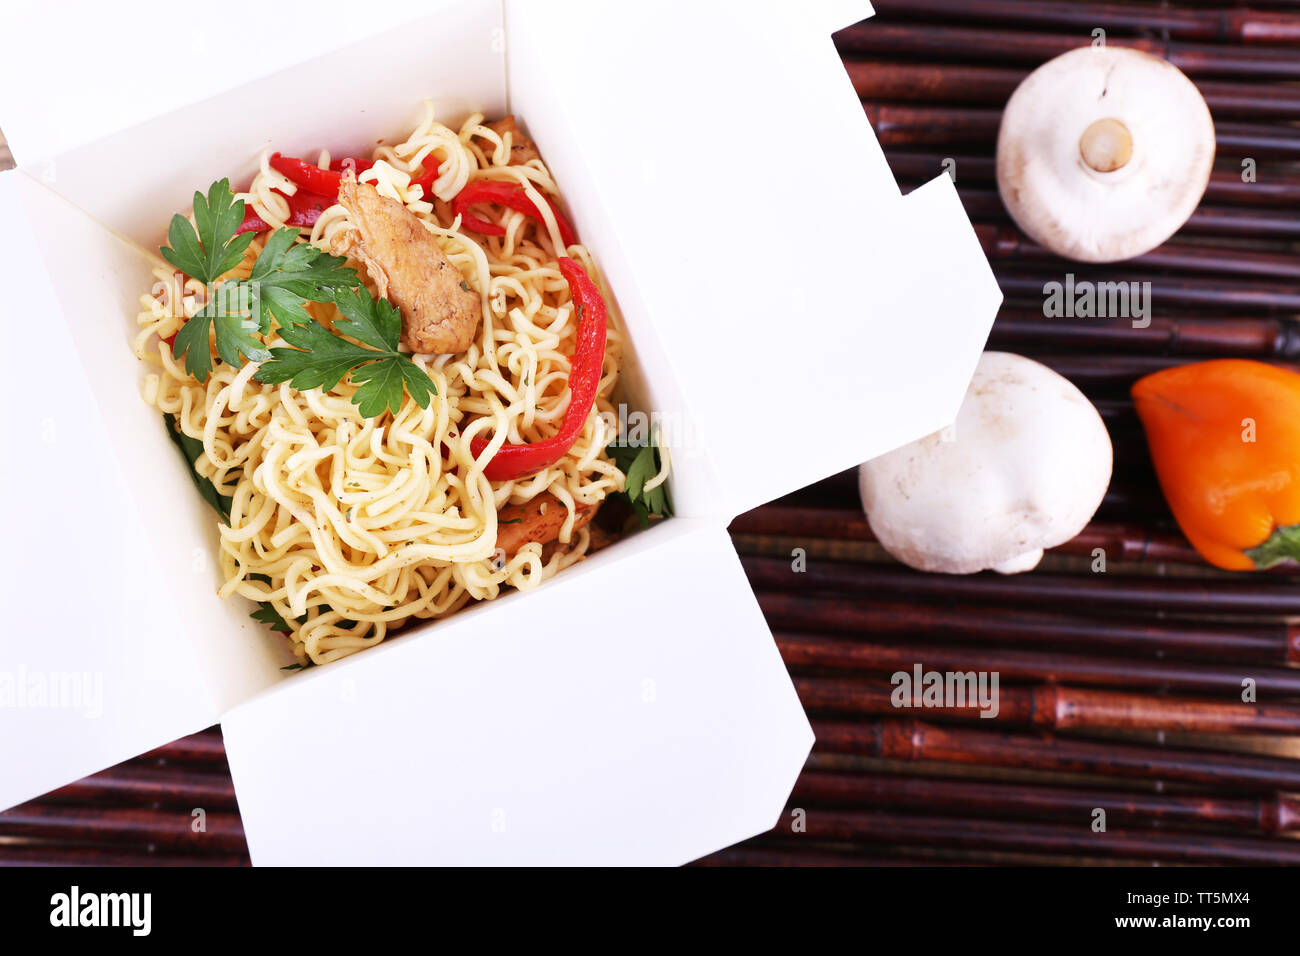 Chinese noodles in takeaway box on bamboo mat background - Stock Image